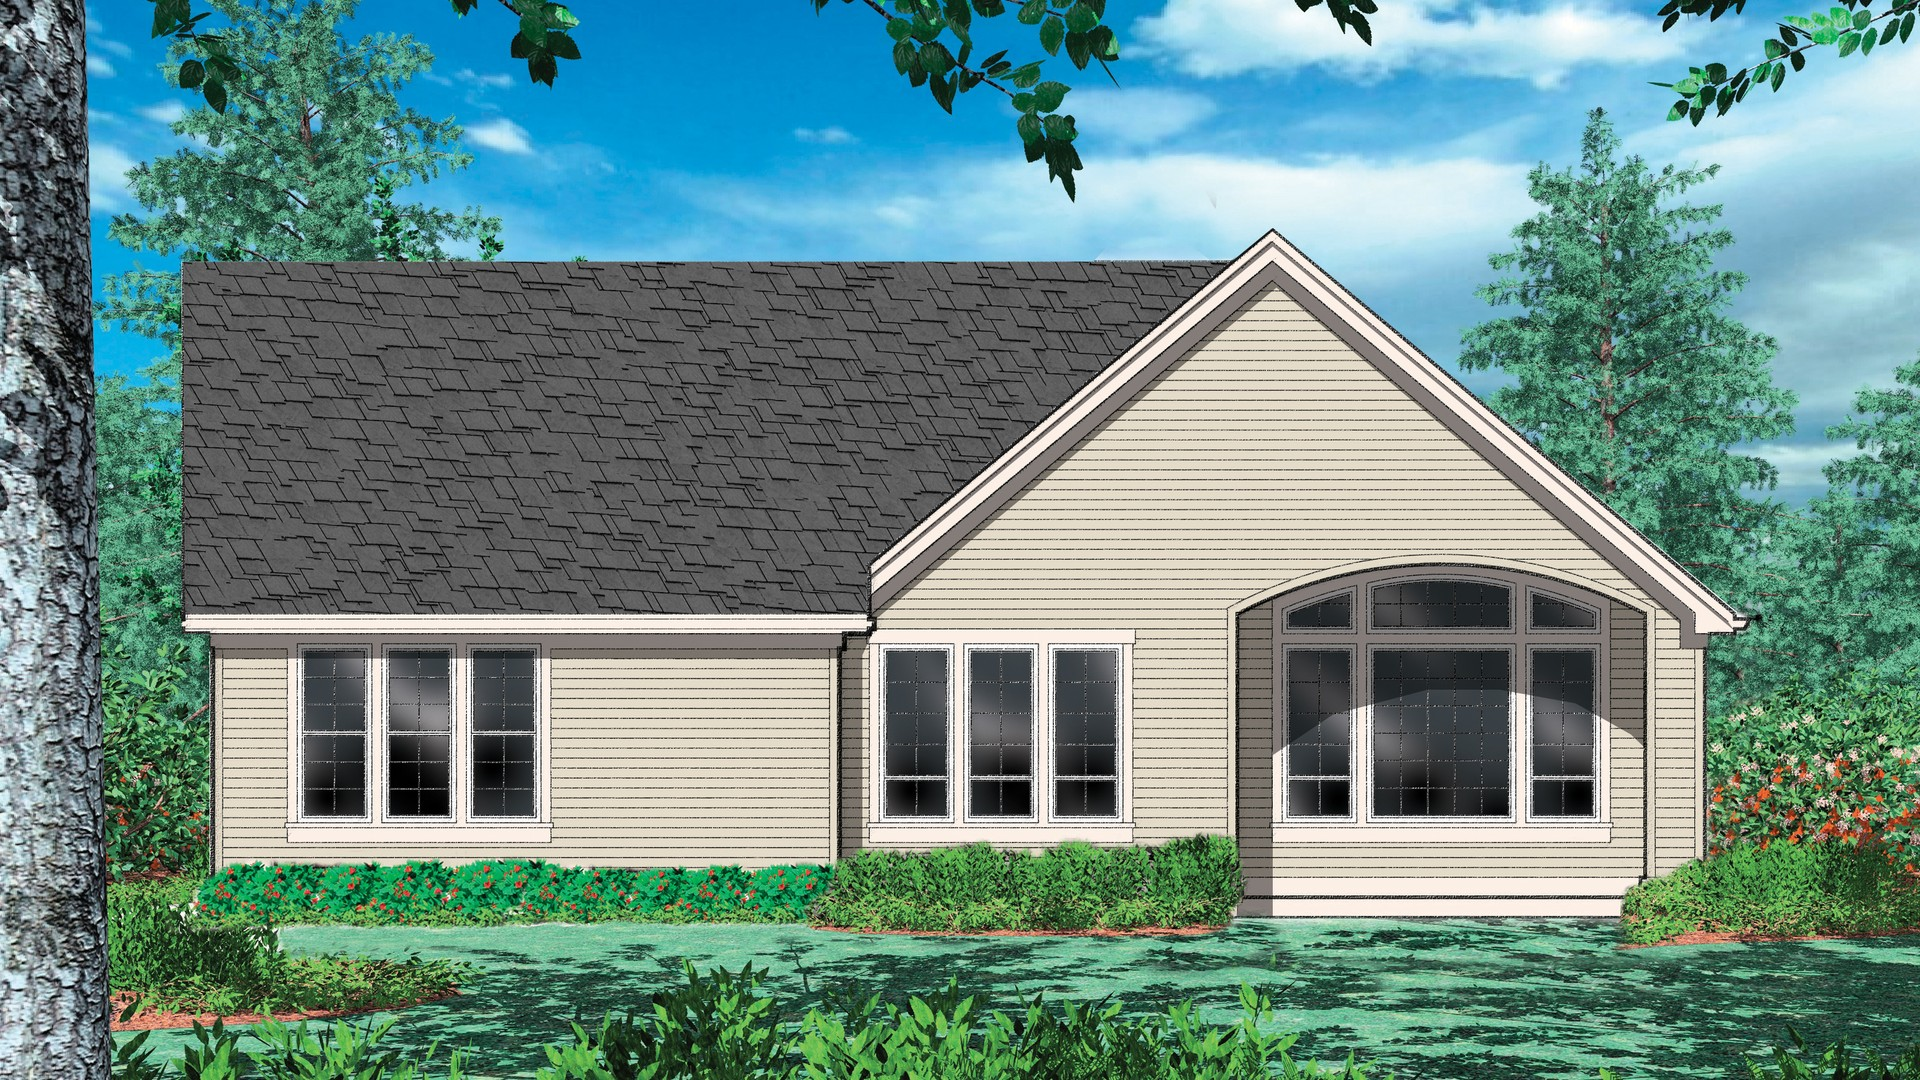 Cottage House Plan 1146 The Godfrey: 1580 Sqft, 3 Bedrooms, 2.1 ...